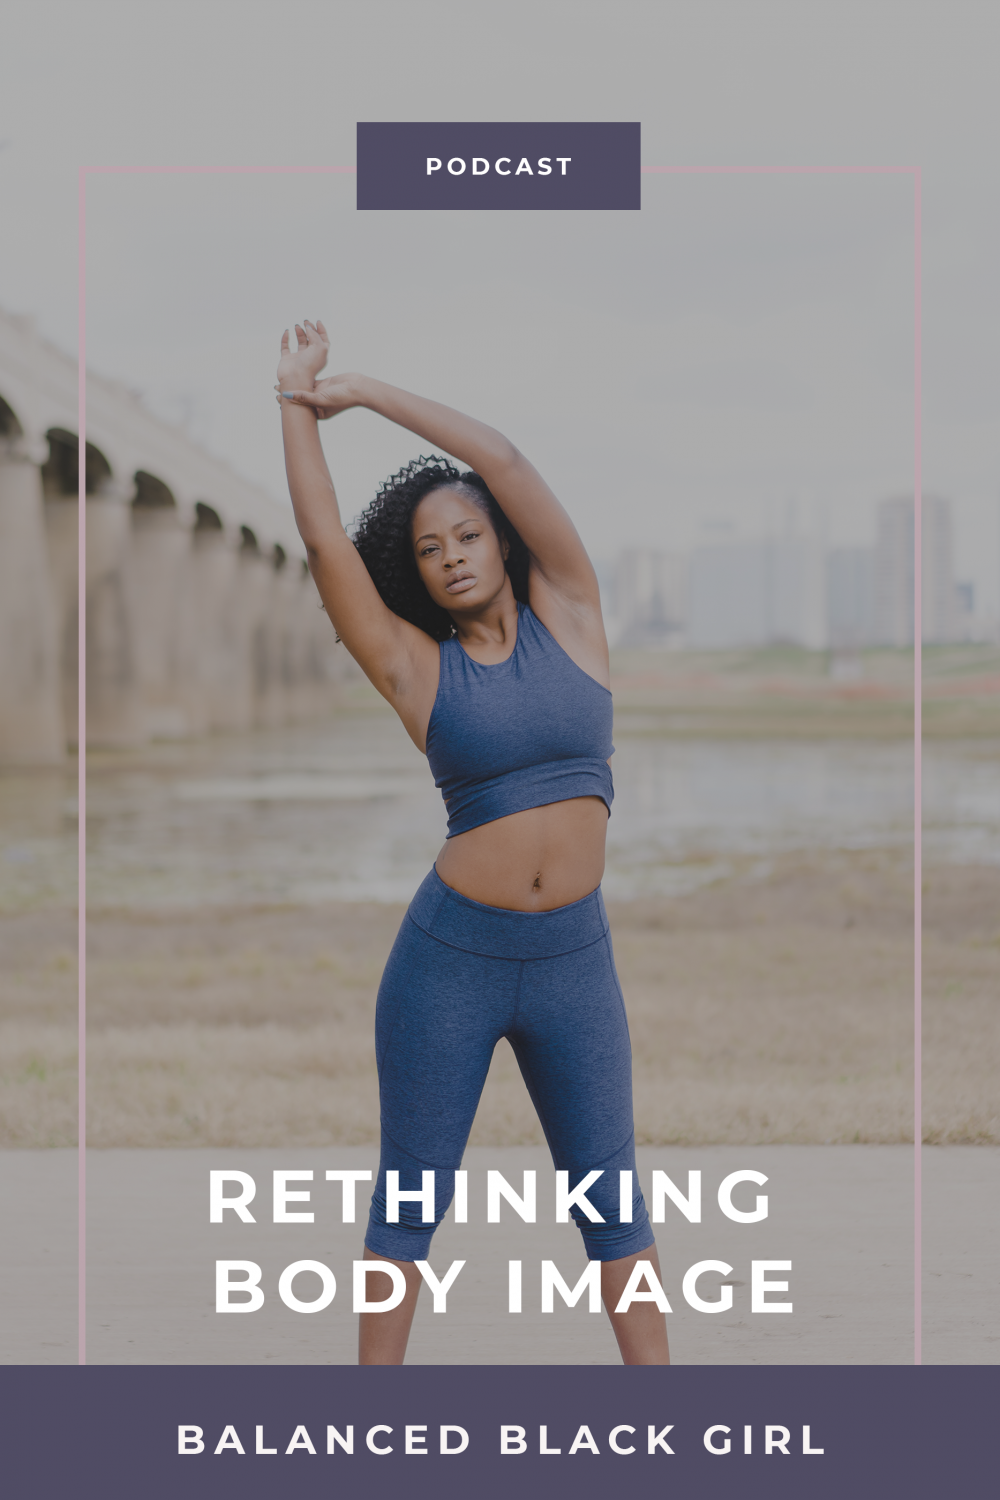 Feel Good Friday 9: Rethinking Body Image